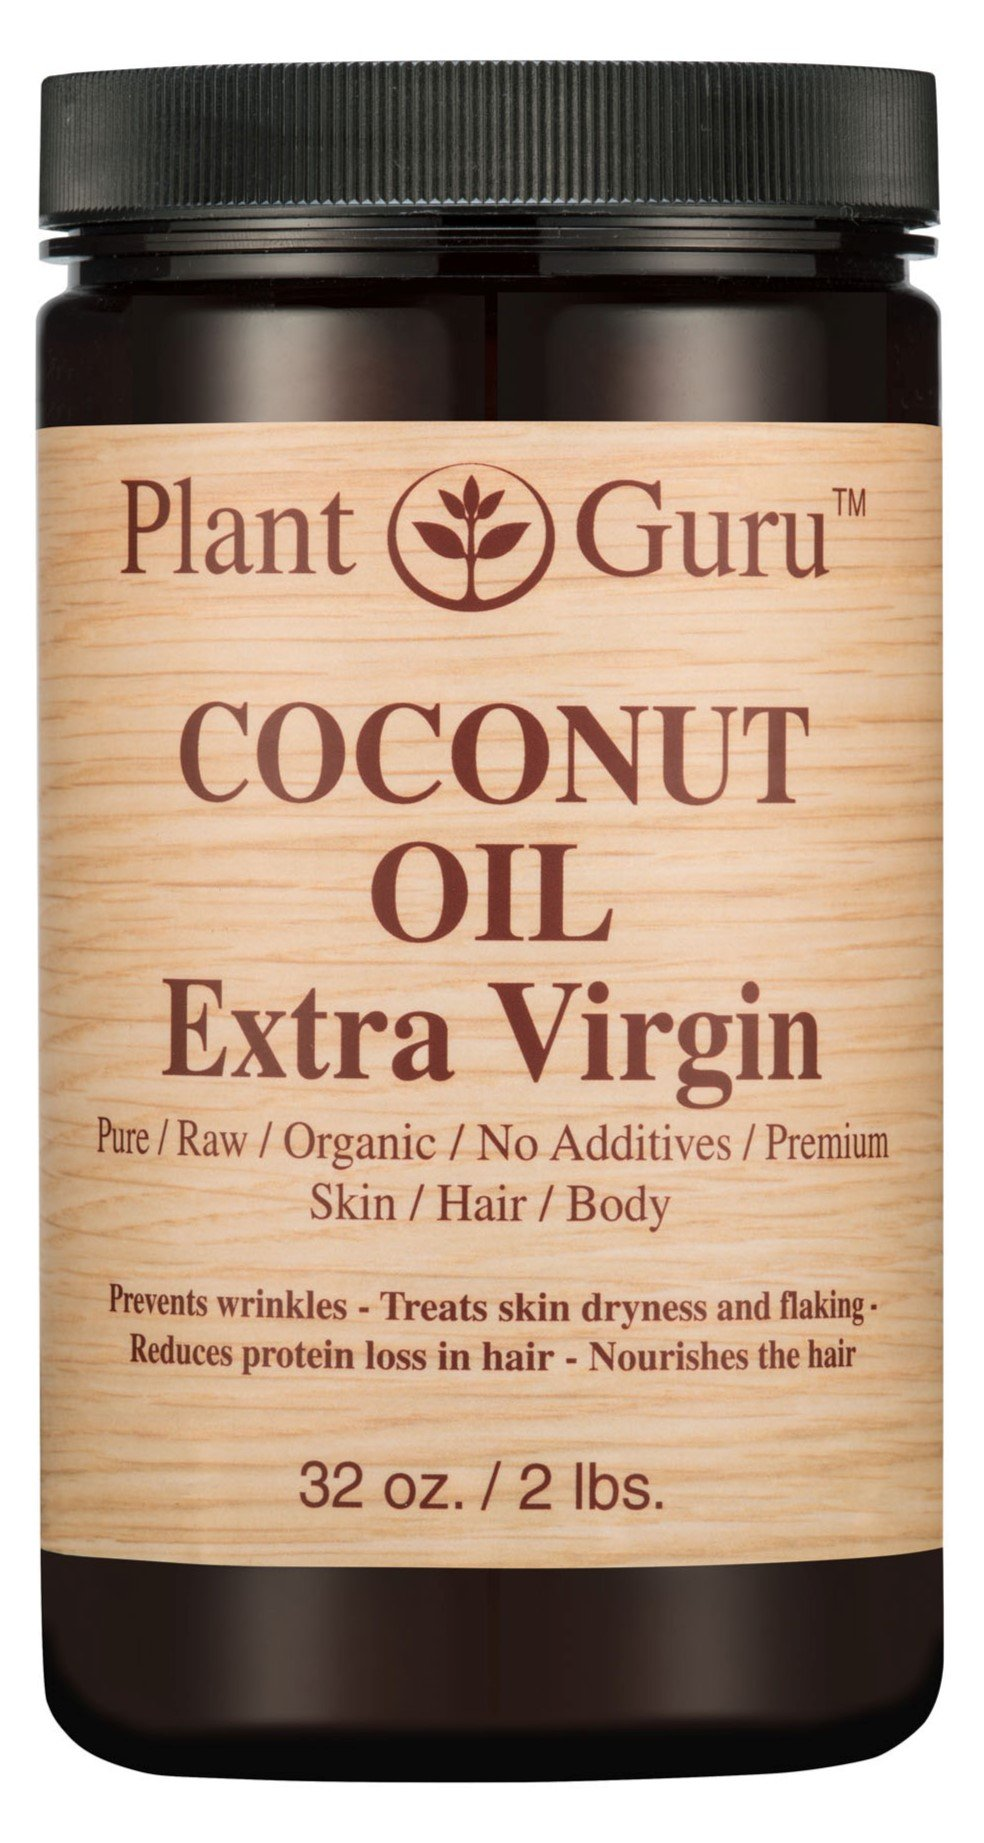 Coconut Oil Extra Virgin Body Butter 32 oz 100% Pure Raw Unrefined Natural Cold Pressed. For Skin, and Hair Growth Moisturizer. DIY Creams, Lip Balm, Lotions, Soap Making